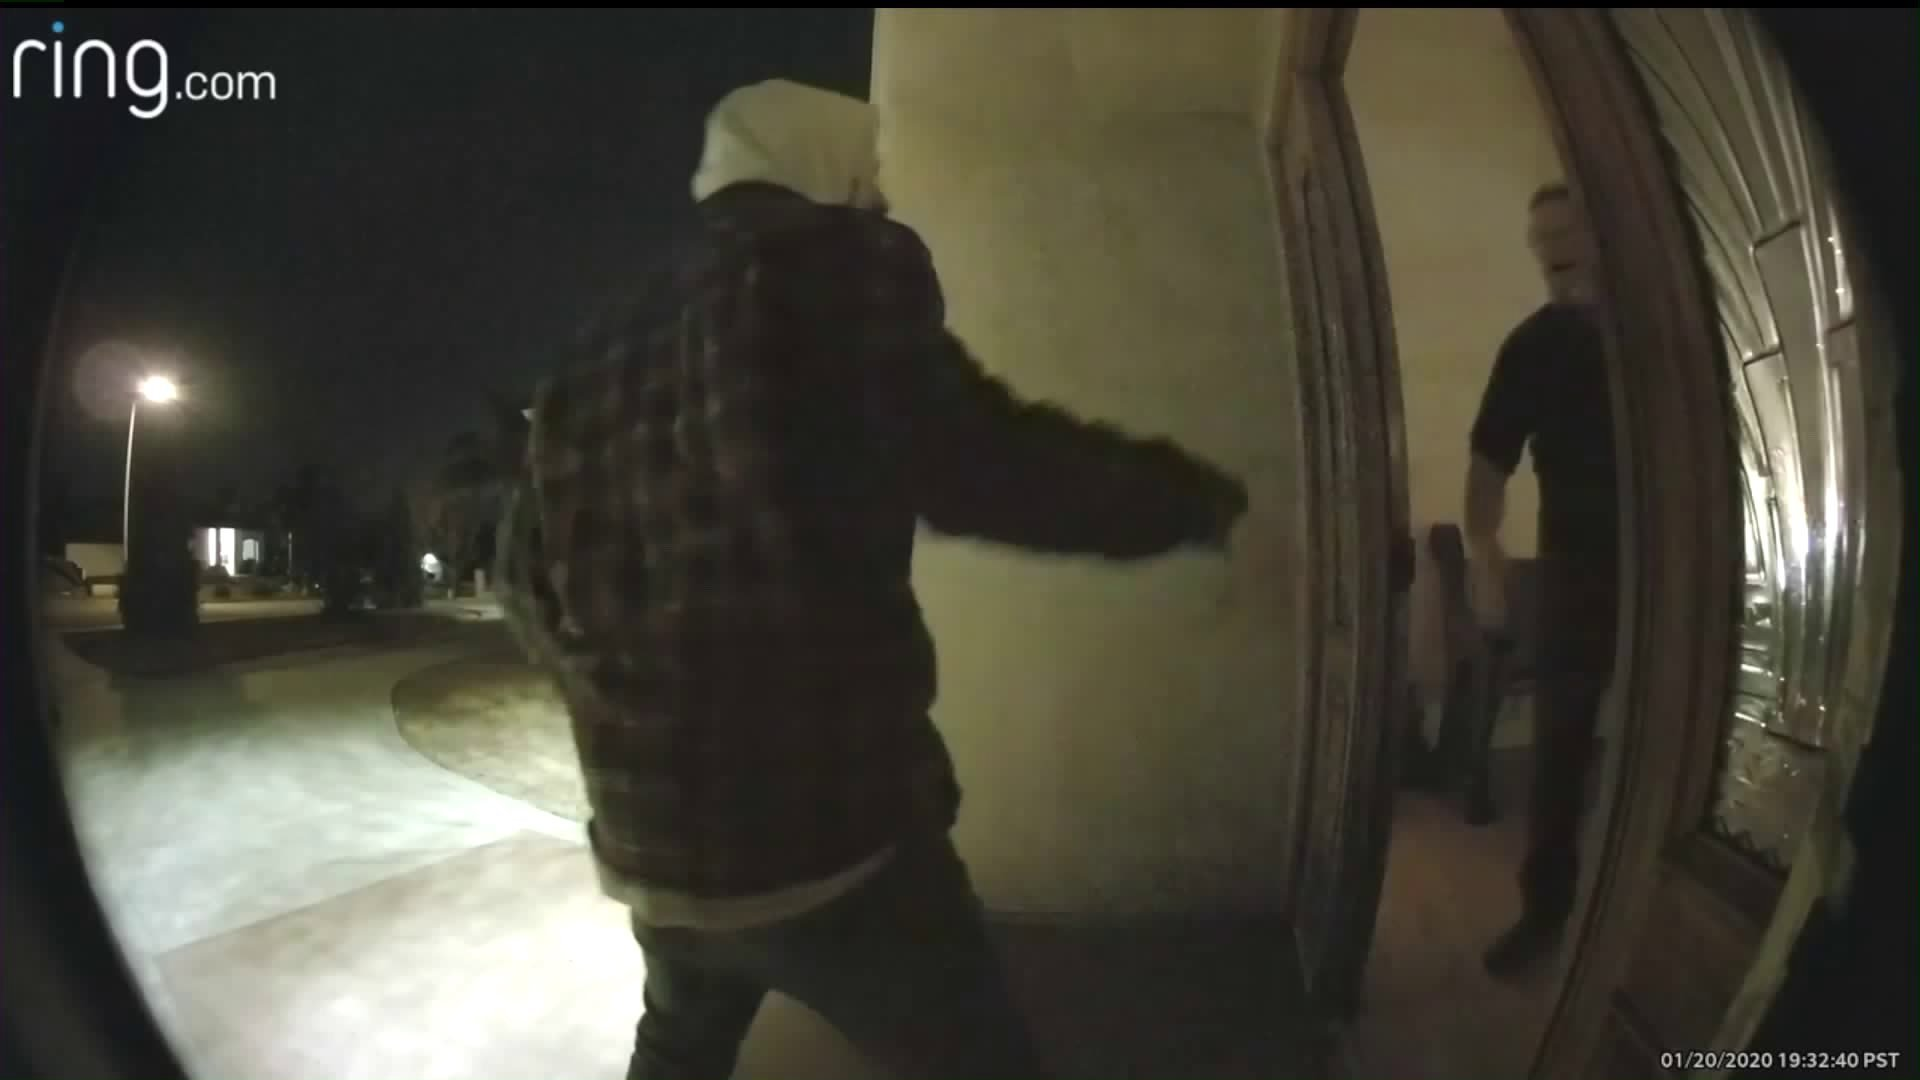 The Yucaipa Police Department released Ring alarm video on Jan, 22, 2020, showing a man trying to force his way into a home.